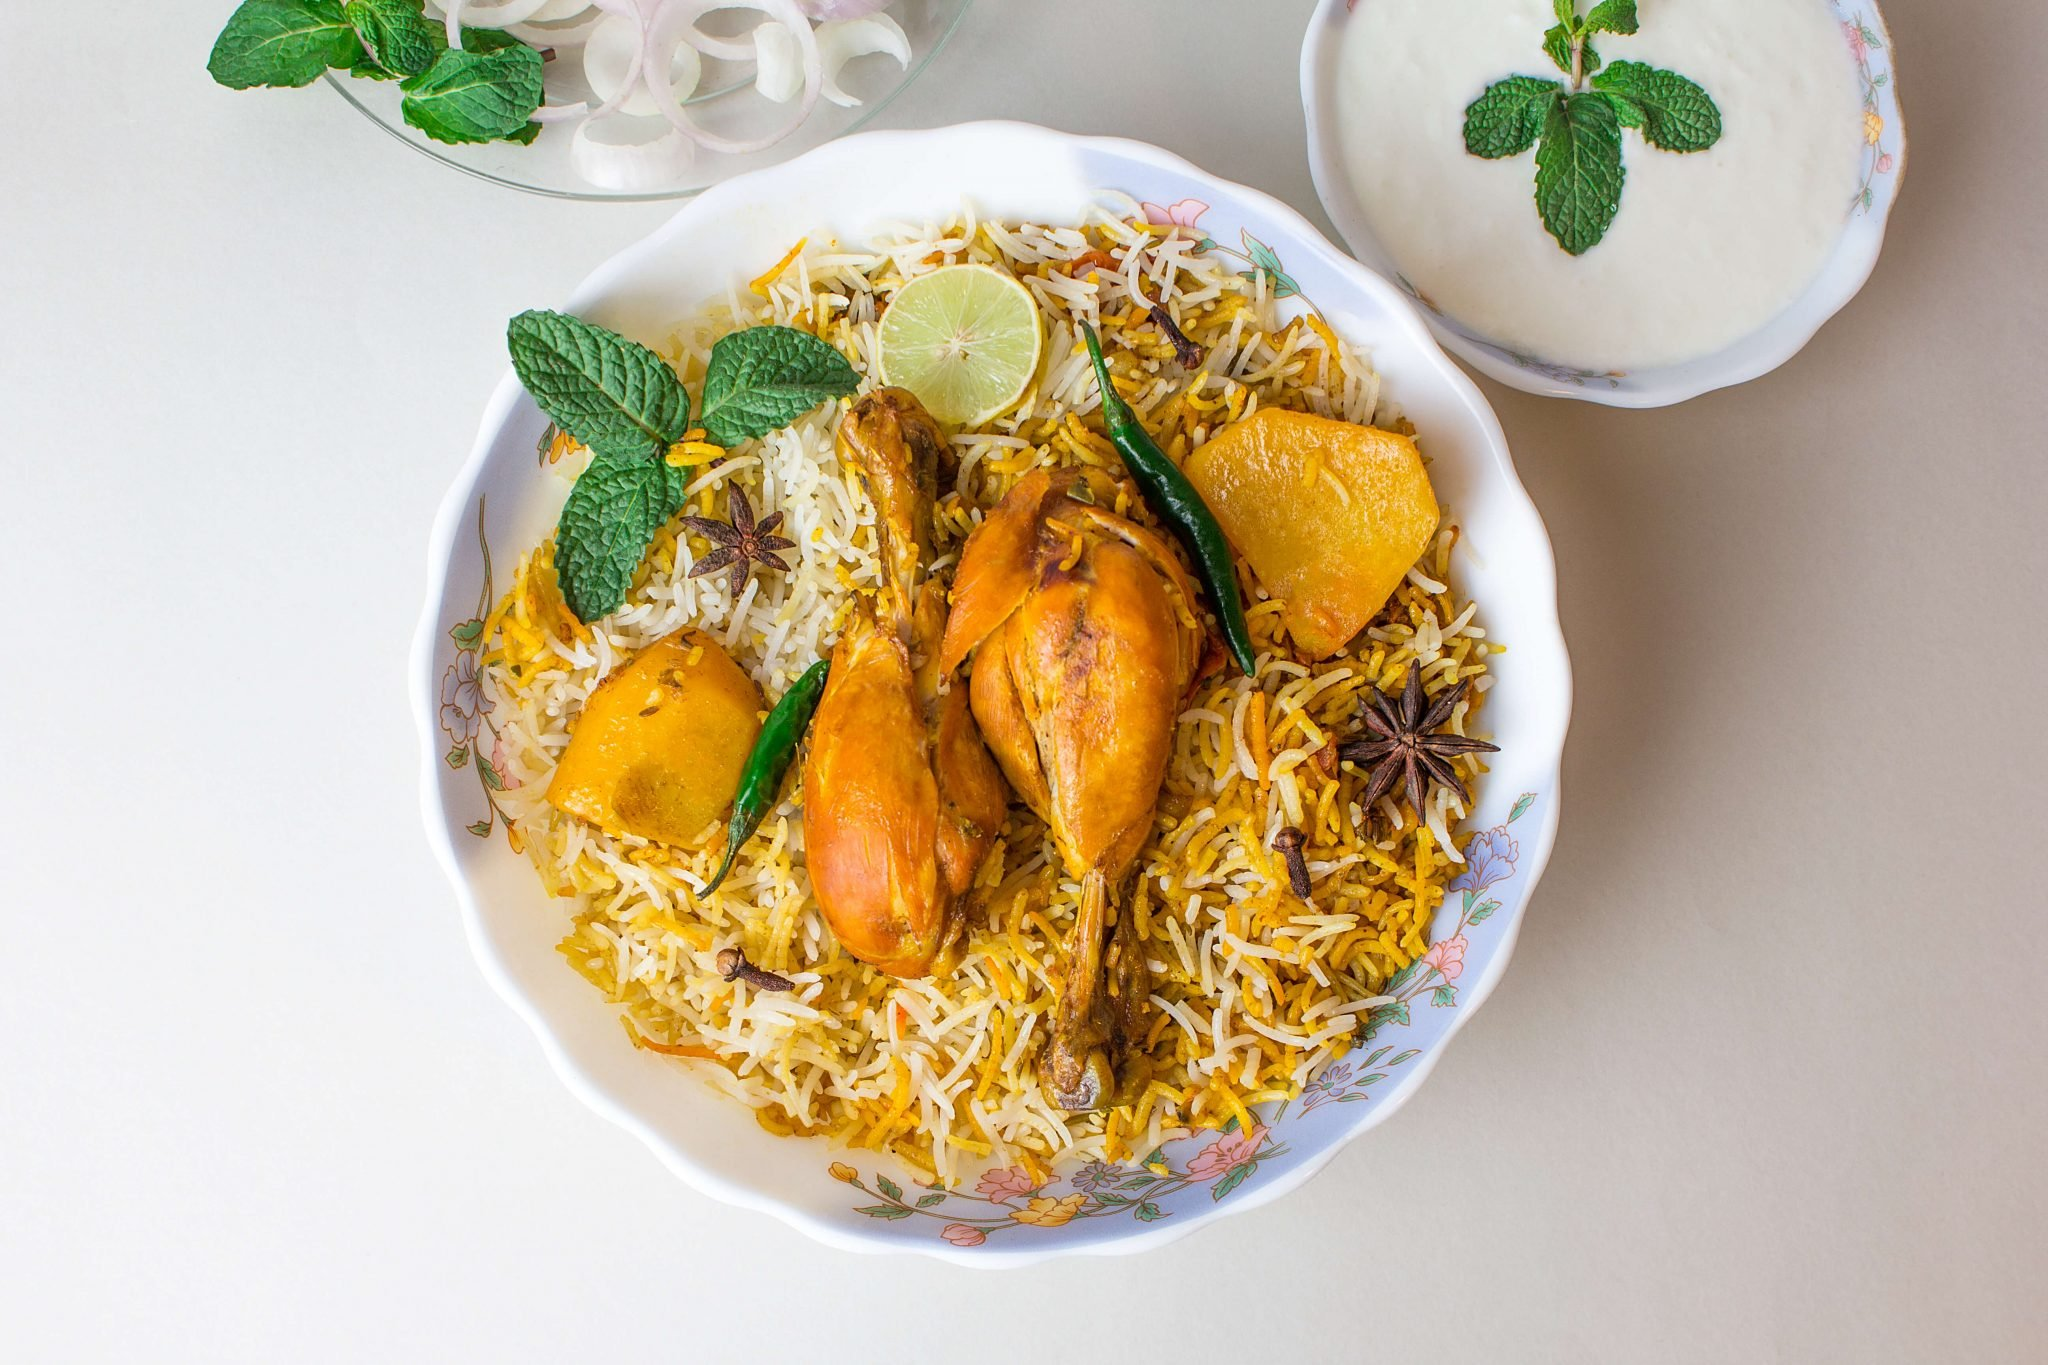 Biryani is the traditional dish of the Subcontinent that is famous all over the world. The tempting aroma and the creative blend of masalas with chicken or beef make it a whole feast. Although there are so many types of Biryanis, however, Hyderabadi Biryani is considered one of the richest forms. People love to have it with their friends and family as it brings them all of them at one table. There are different recipes that have been used for Hyderabadi biryani, however, this recipe is a traditional one and rich in taste. Check out the details! How To Make Best In Taste Hyderabadi Biryani? Check out the ingredients and recipe here for the best in taste Hyderabadi biryani that will be on you unforgettable list. It is simple and perfect to make at home. Note down these details! Ingredients In order to achieve the best results, follow each step and use all the mentioned ingredients. This recipe has been in use for many years and produces a welcoming aroma with perfect taste. It is also called Kacchi Hyderabadi Biryani as it has rice used in the partially cooked form and finally prepared in dum style. So, note down these ingredients now. Main Ingredients 1 Kg meat 1 tbsp salt 1 tbsp ginger garlic paste 1 tbsp red chilli paste 1 tbsp green chilli paste (sauteed brown onions to taste) 1/2 tbsp cardamom powder 3-4 Cinnamon sticks 1 tbsp cumin seeds 4 Cloves A pinch of mace to taste mint leaves 2 tbsp lemon juice 250 gms yogurt 4 tbsp clarified butter 750 gms semi-cooked rice 1 tsp saffron 1/2 cup water 1/2 cup oil Garnish ingredients Eggs, boiled Carrots, sliced Cucumbers Recipe So, gathering all of these ingredients, now you have to follow these steps for making the richest in flavours Hyderabadi Biryani. Step 1 Wash and clean the meat properly. Step 2 Now add yogurt, salt, red chillies powder, ginger garlic paste, green chilli paste, sauteed brown onions, cardamom powder, cinnamon, cumin seeds, cloves, mace, mint leaves and lemon juice in the meat to marinate. Step 3 Mix